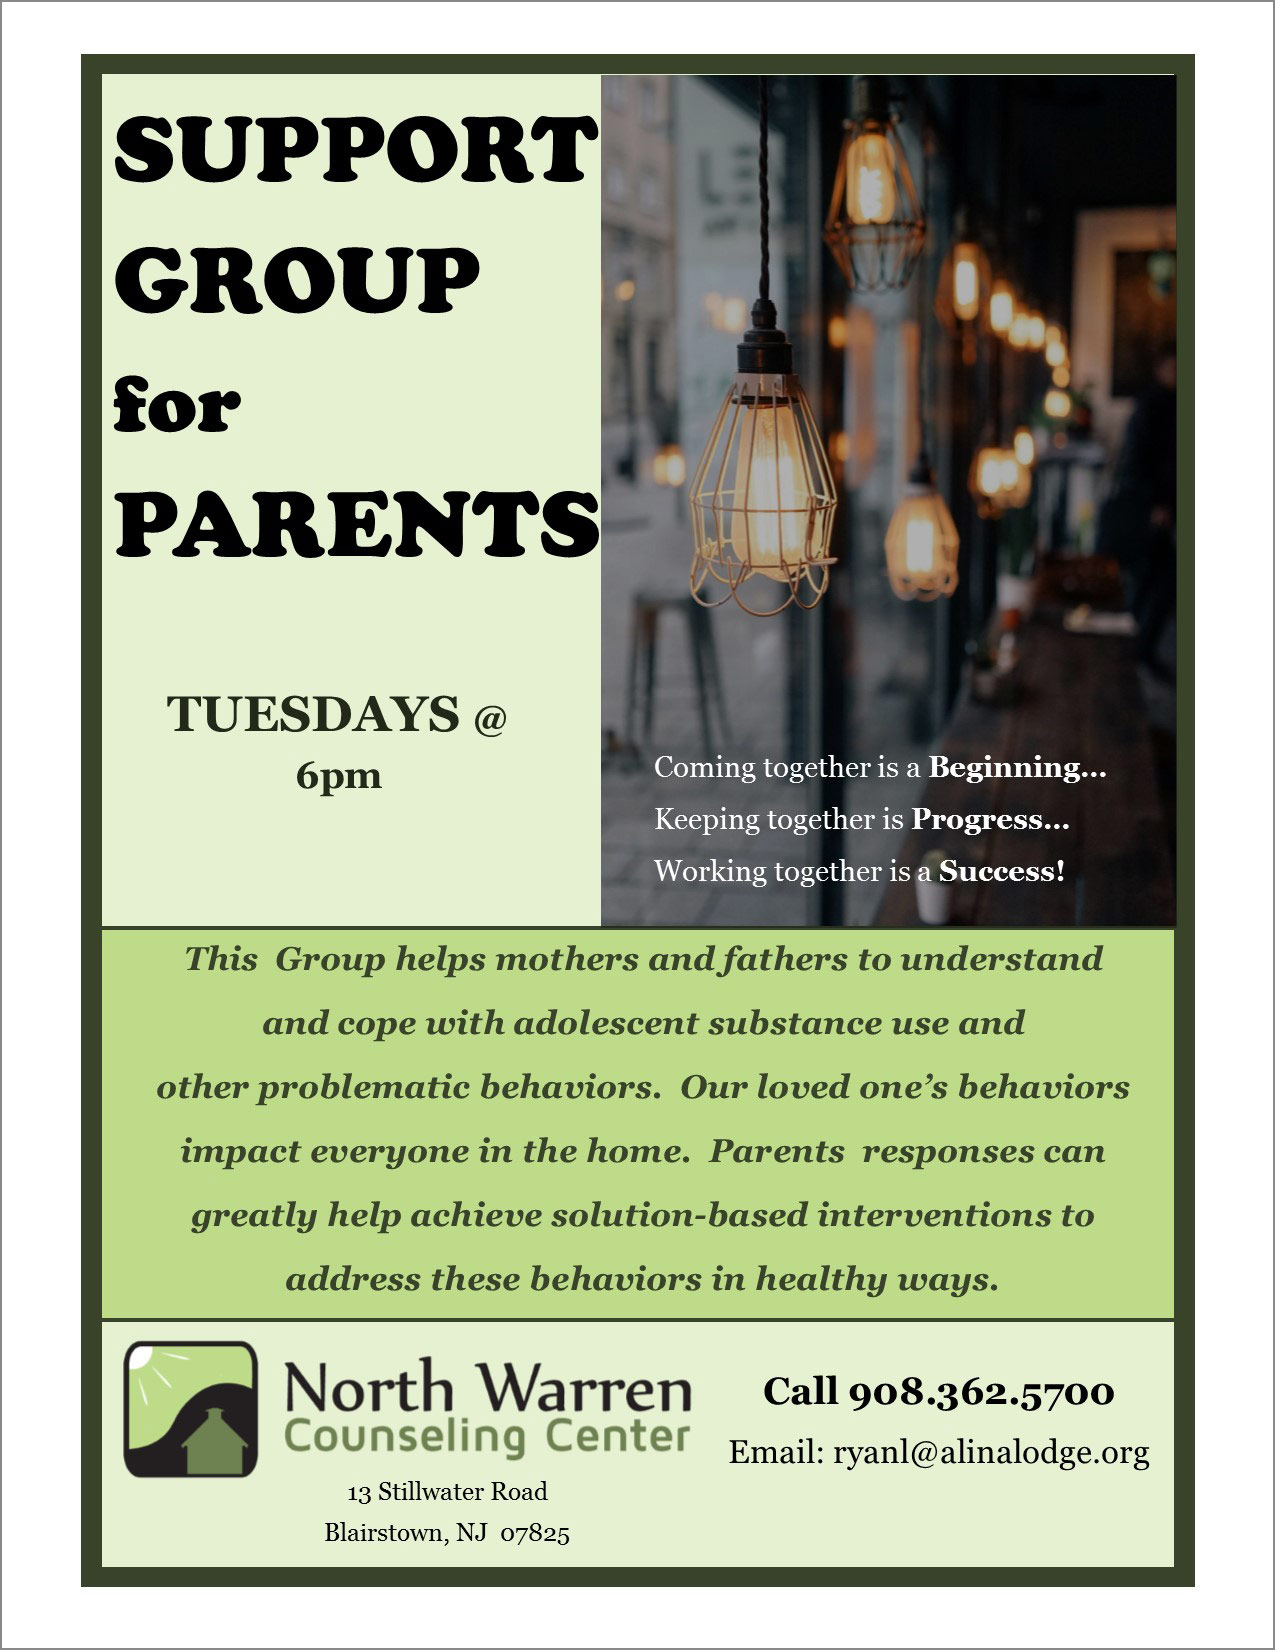 north warren counseling center parent's support group